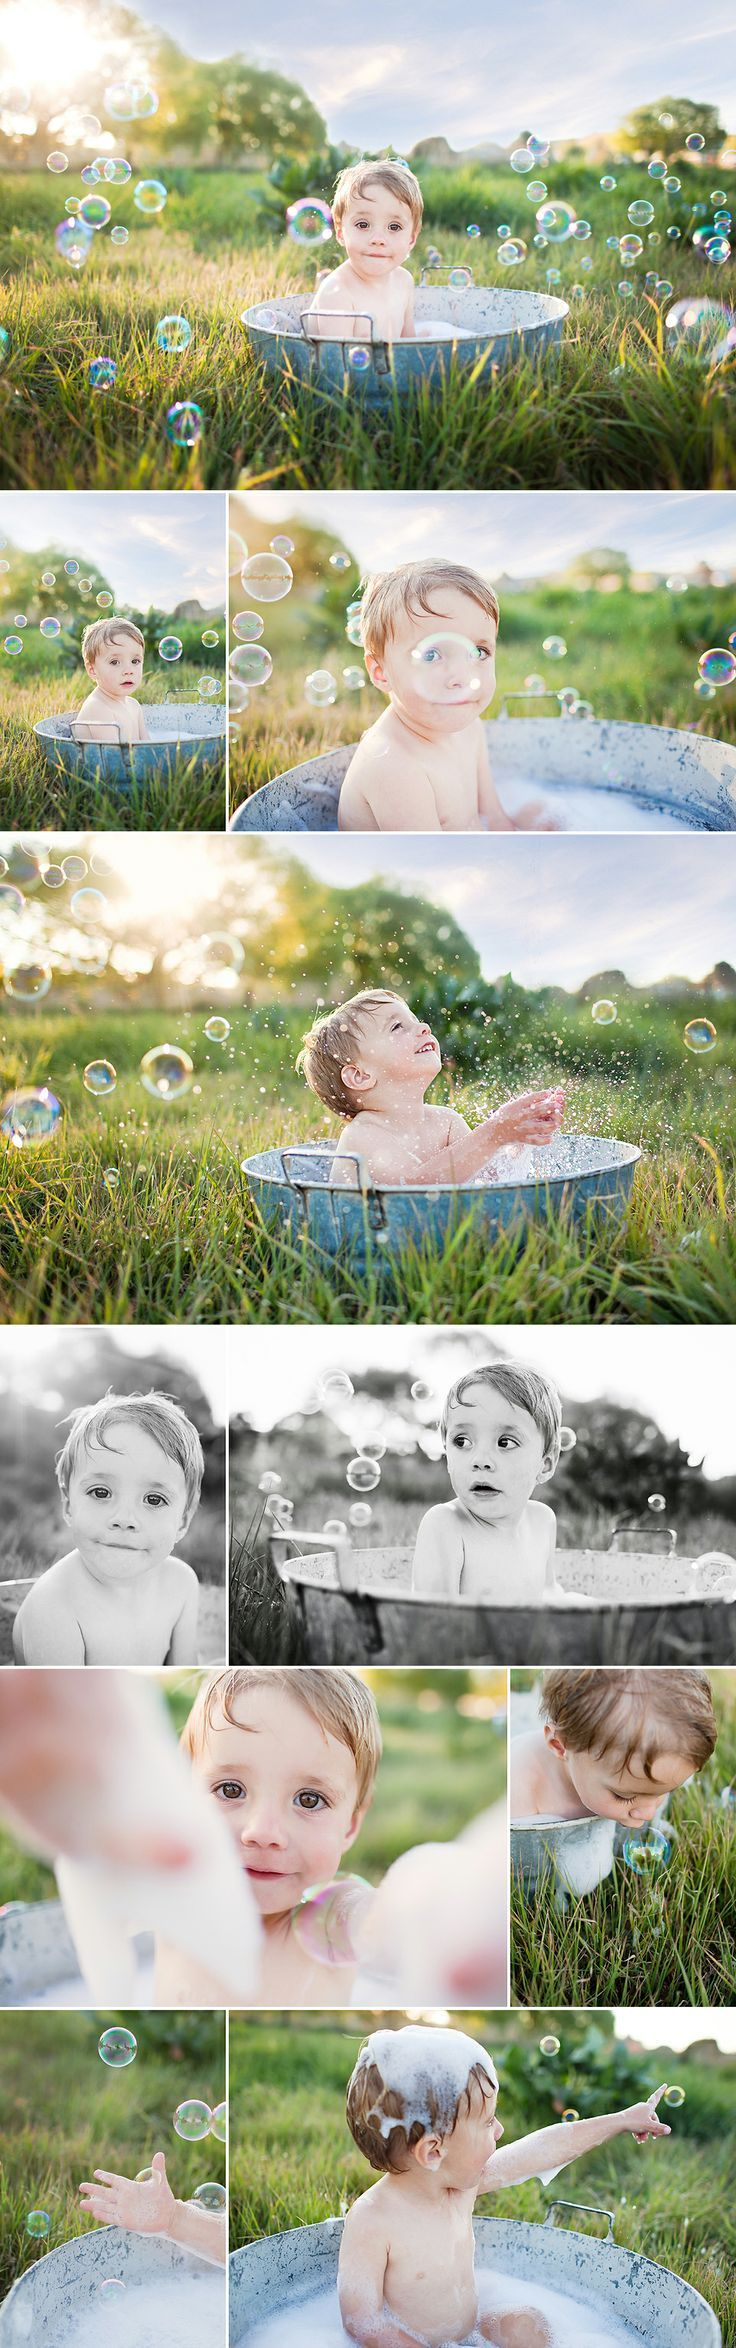 cute bubble bath photo shoot! Maybe for pics in the boys bathroom? Trying to decide between this and a mud photo shoot?  | followpics.co